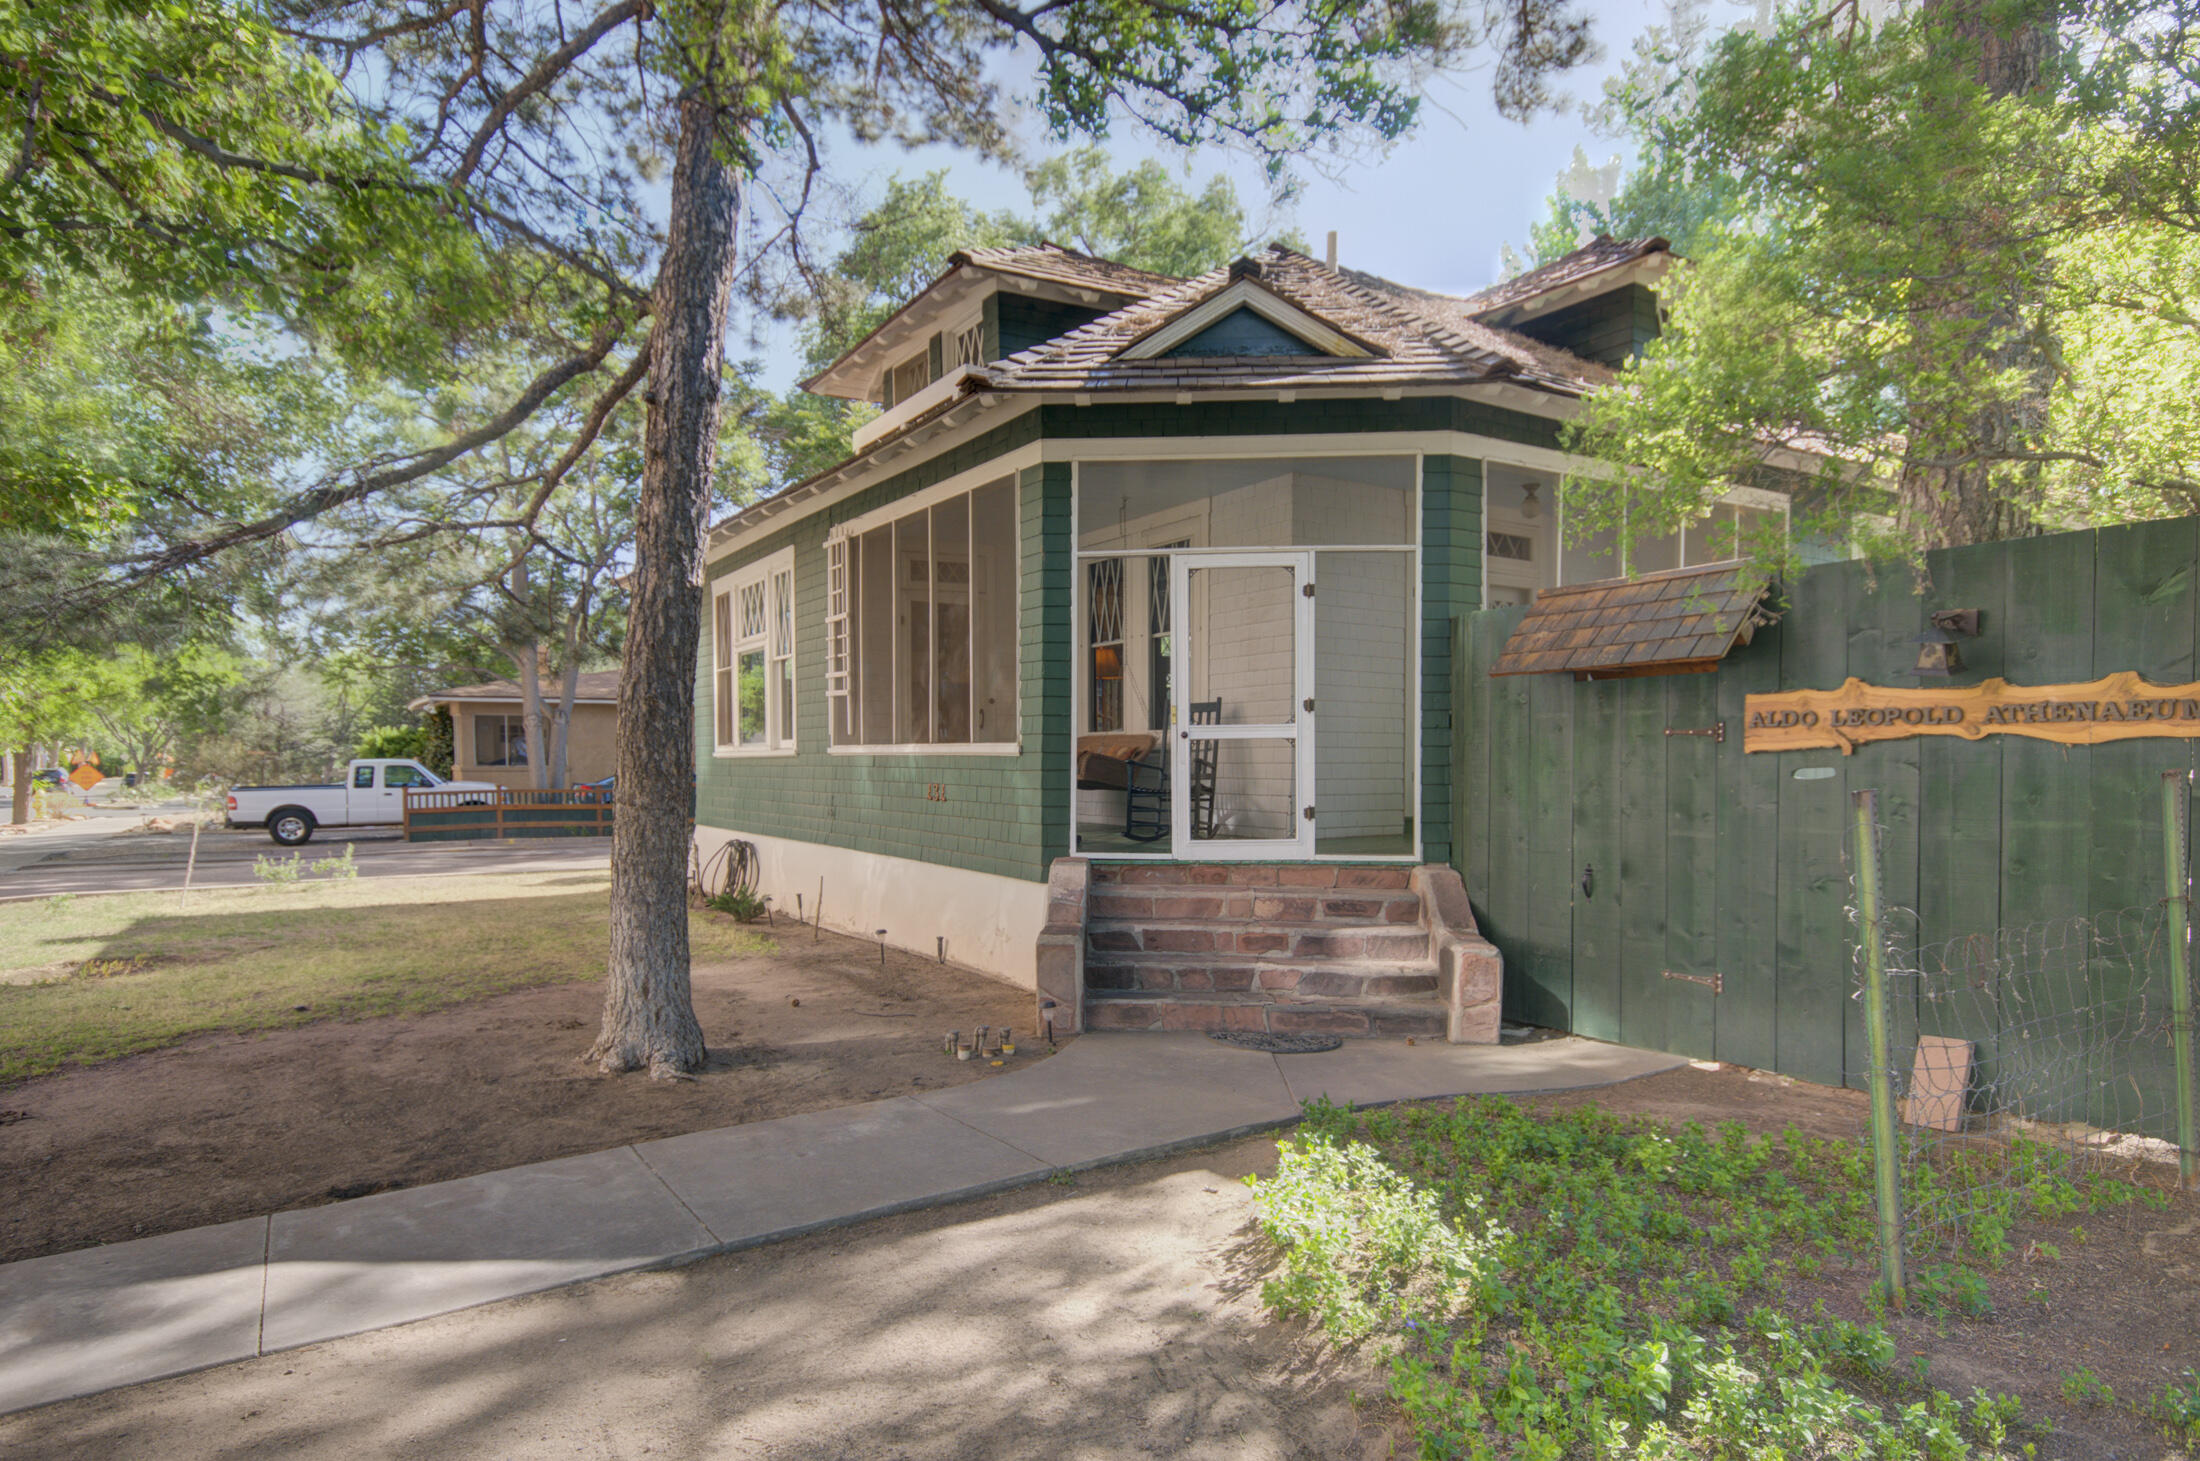 Lovingly restored Craftsman bungalow in popular Huning Castle neighborhood on large lot with backyard access. Registered in the historical registry as the Aldo Leopold historic district. Remodel completed in 1995- modern conveniences with old world charm. Authenticity of the period in original wood work, diamond- paned windows, built-in buffet and bookcases. Coffered ceiling crowns the living room with striking flagstone fireplace. Douglas fir red cedar shingle roof  done 2011 and oiled in 2019. Heartland replica stove.  Property includes 2 income-producing studio apartments with private courtyard. Huge shaded carport, abundance of pergolas, established trees and native plants offer serenity in the midst of city life. Many possibilities!  Furniture stays!  A treasure trove awaits new owner